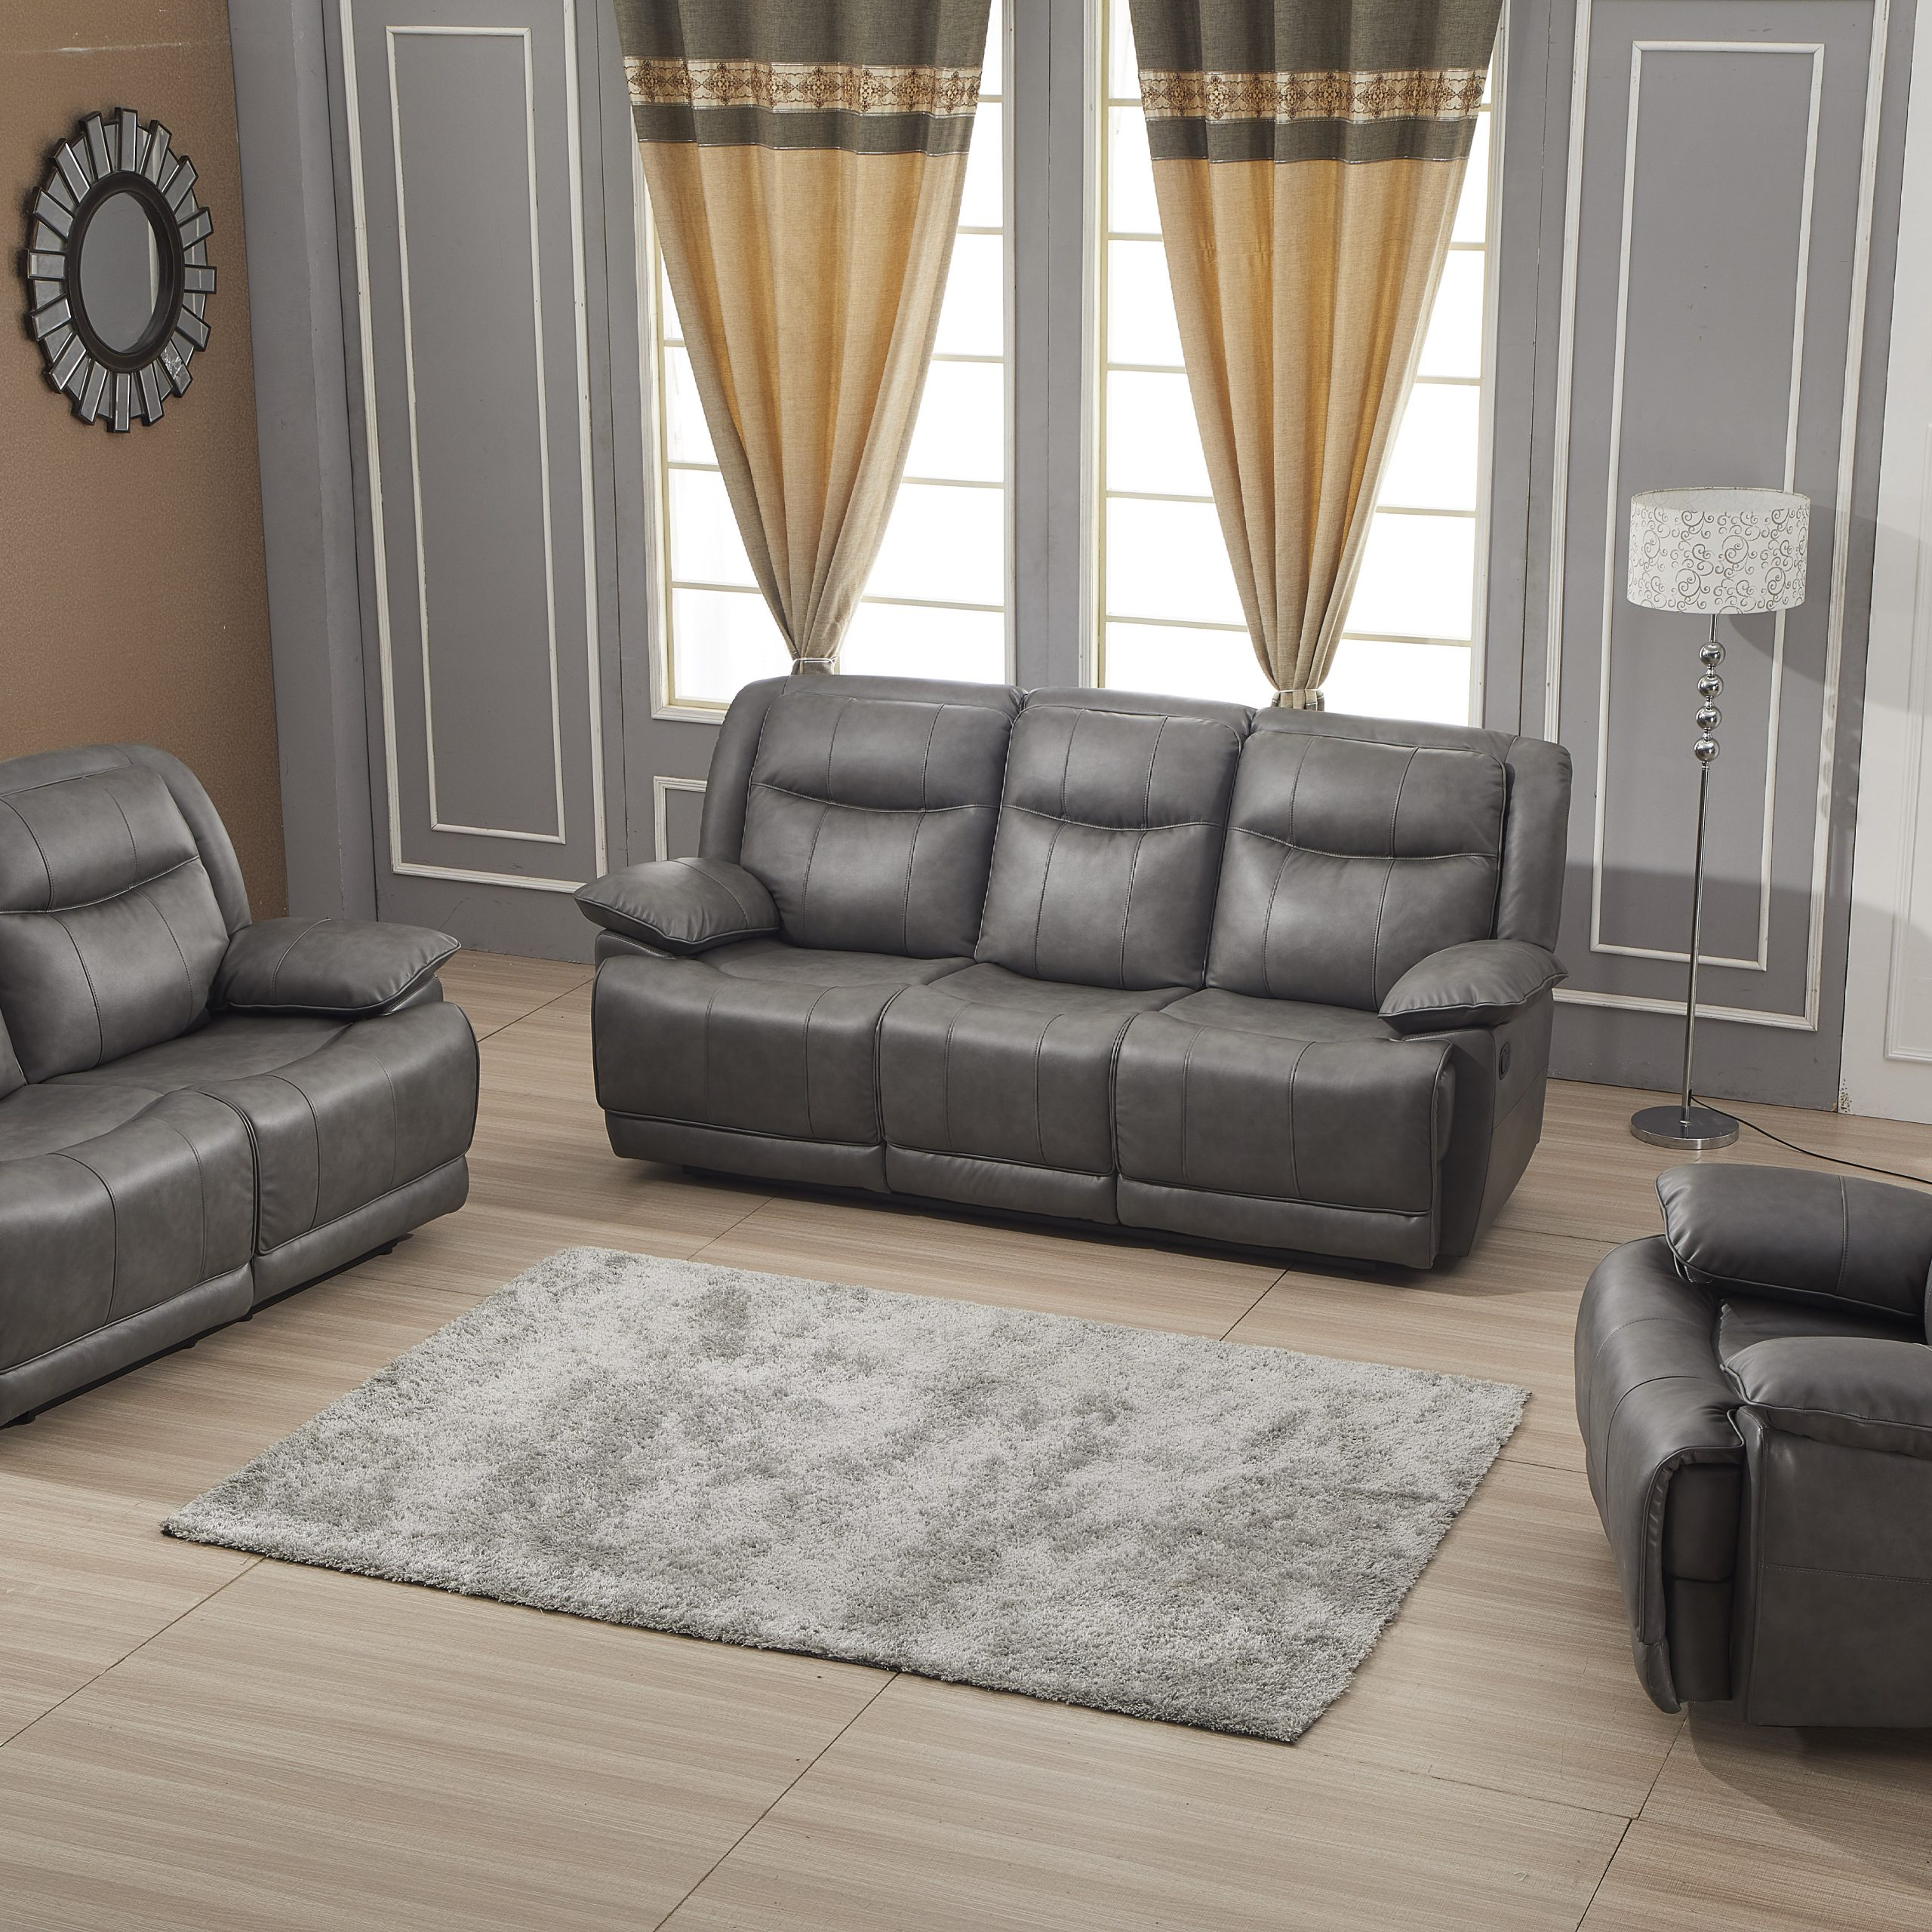 Betsy Furniture Bonded Leather Reclining Sofa Couch Set Throughout Preferred Gray Sofas (View 8 of 20)